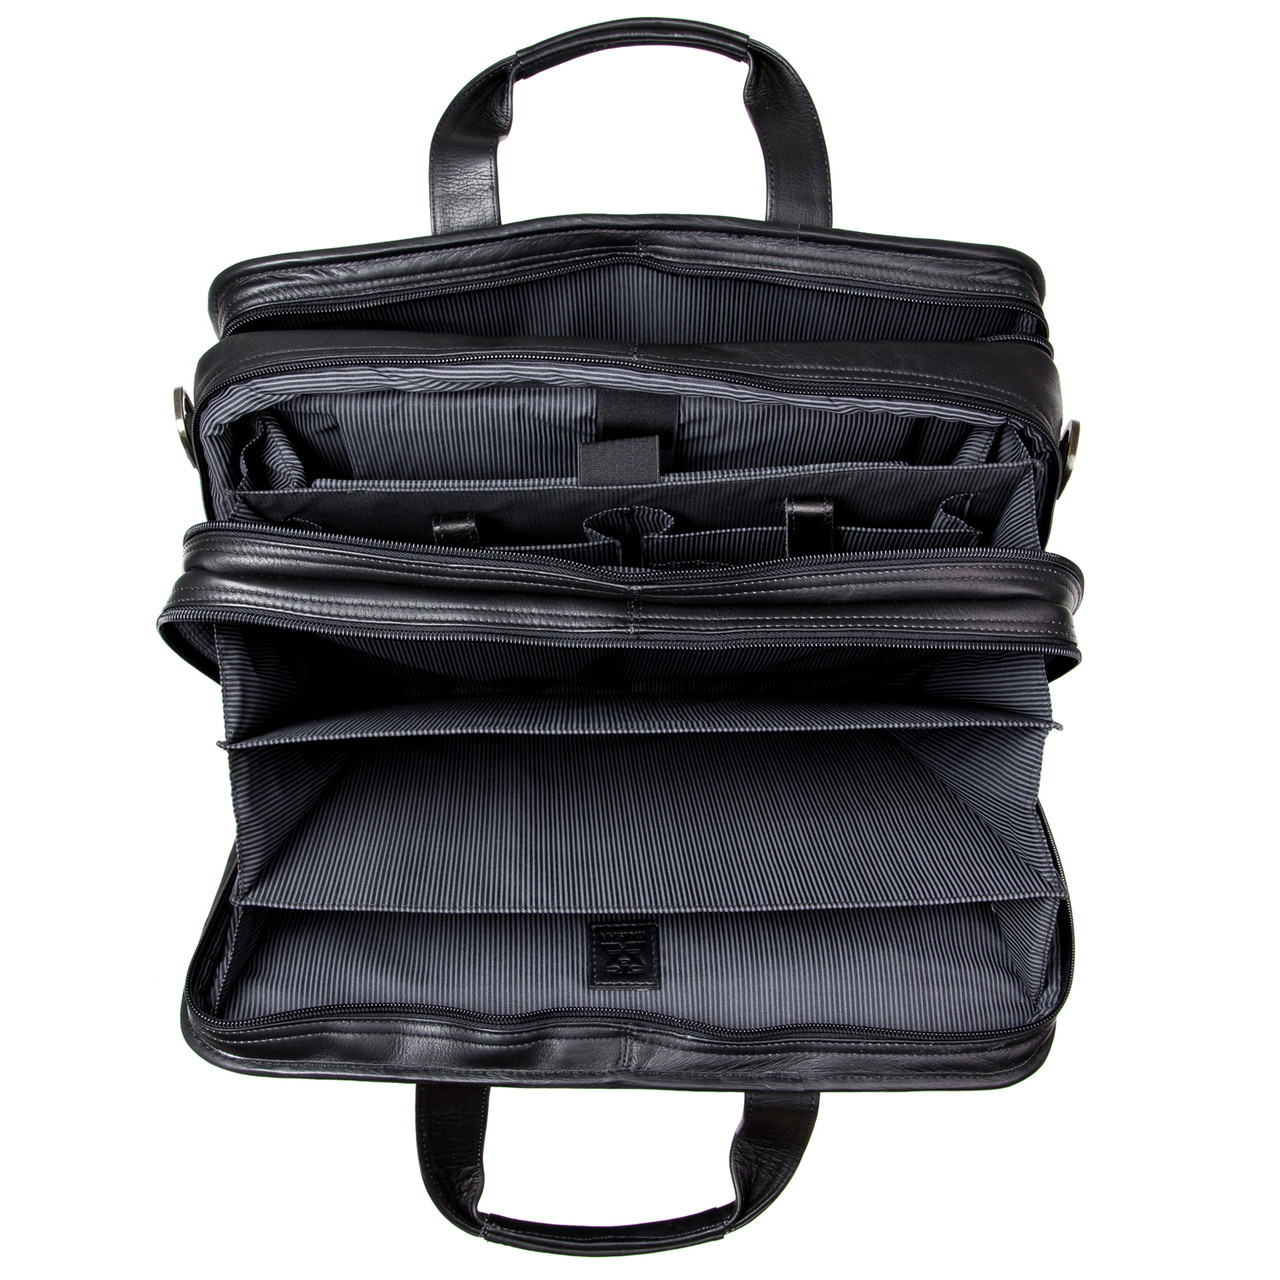 "Muiska - Madrid - 17"" Laptop Bag expands to suit your business needs"